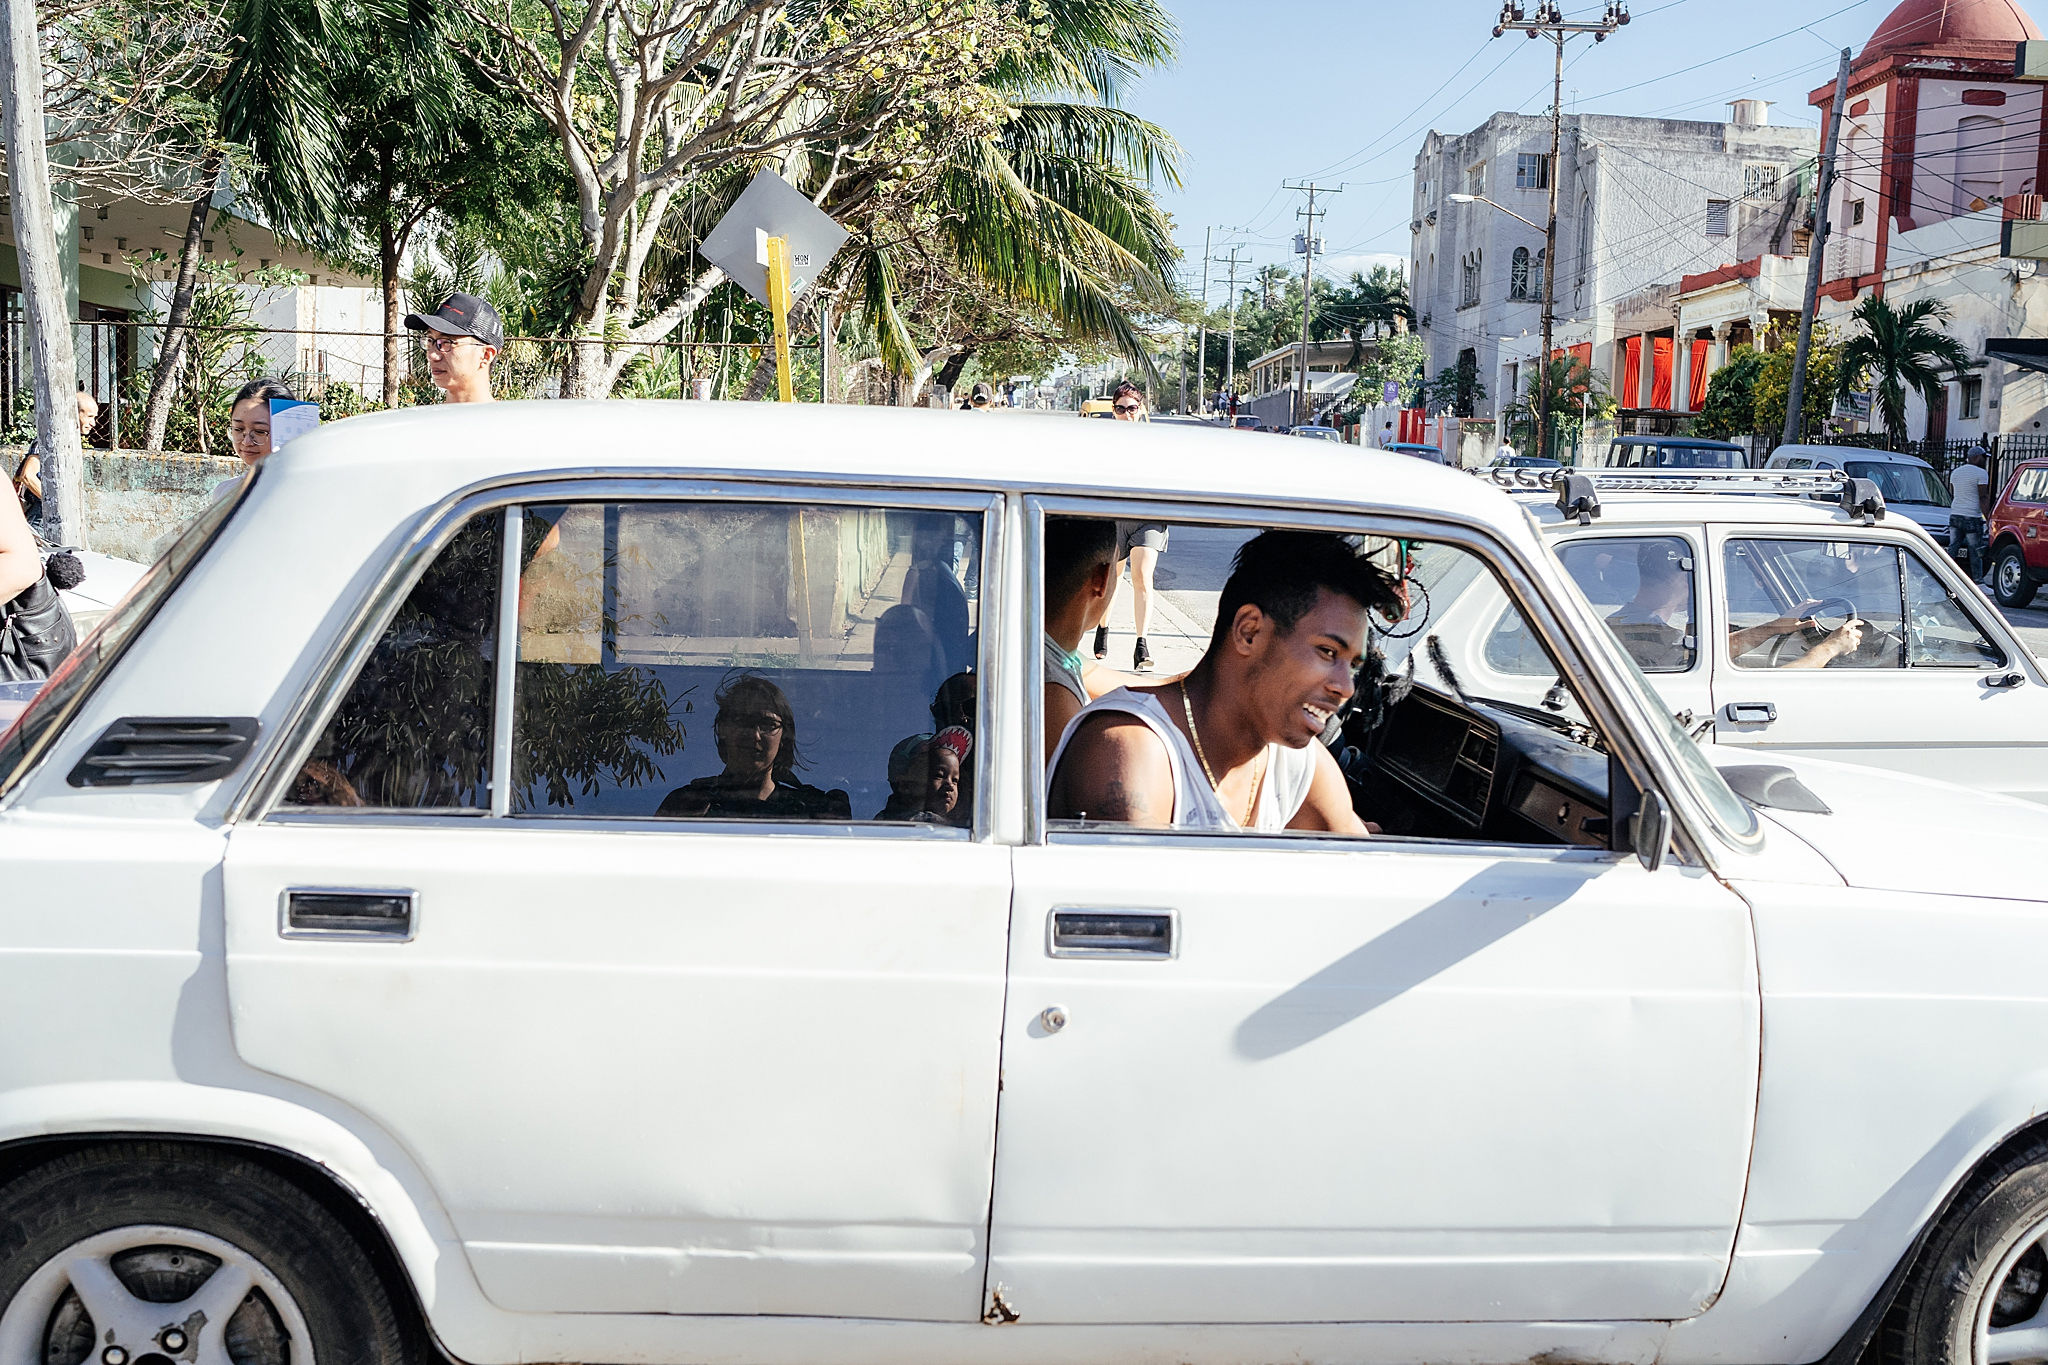 AnneMarie_Hamant_cuba_travel_photographer_0015.jpg